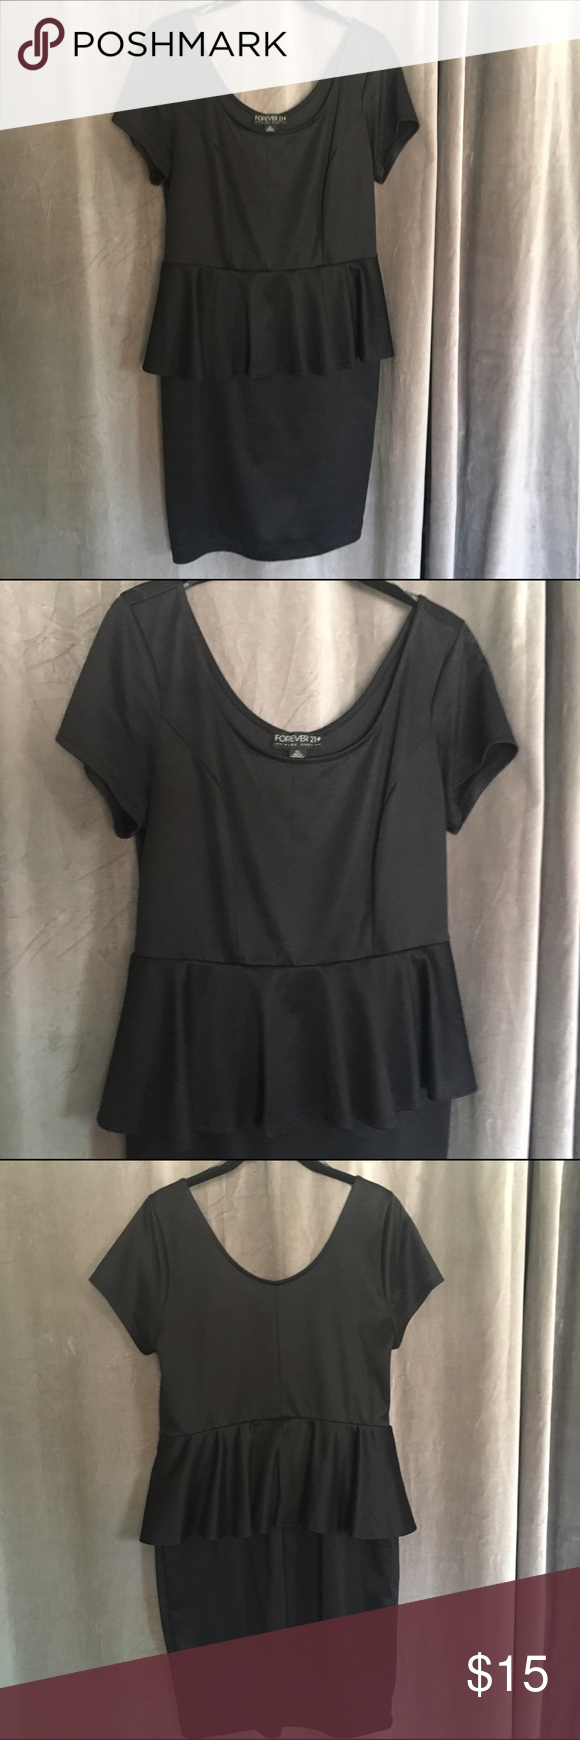 F21 Black Peplum Dress Black peplum dress! Worn once to a formal, in great condition! Tight fitting, but the peplum is flattering! Scoop neck and back! Forever 21 Dresses